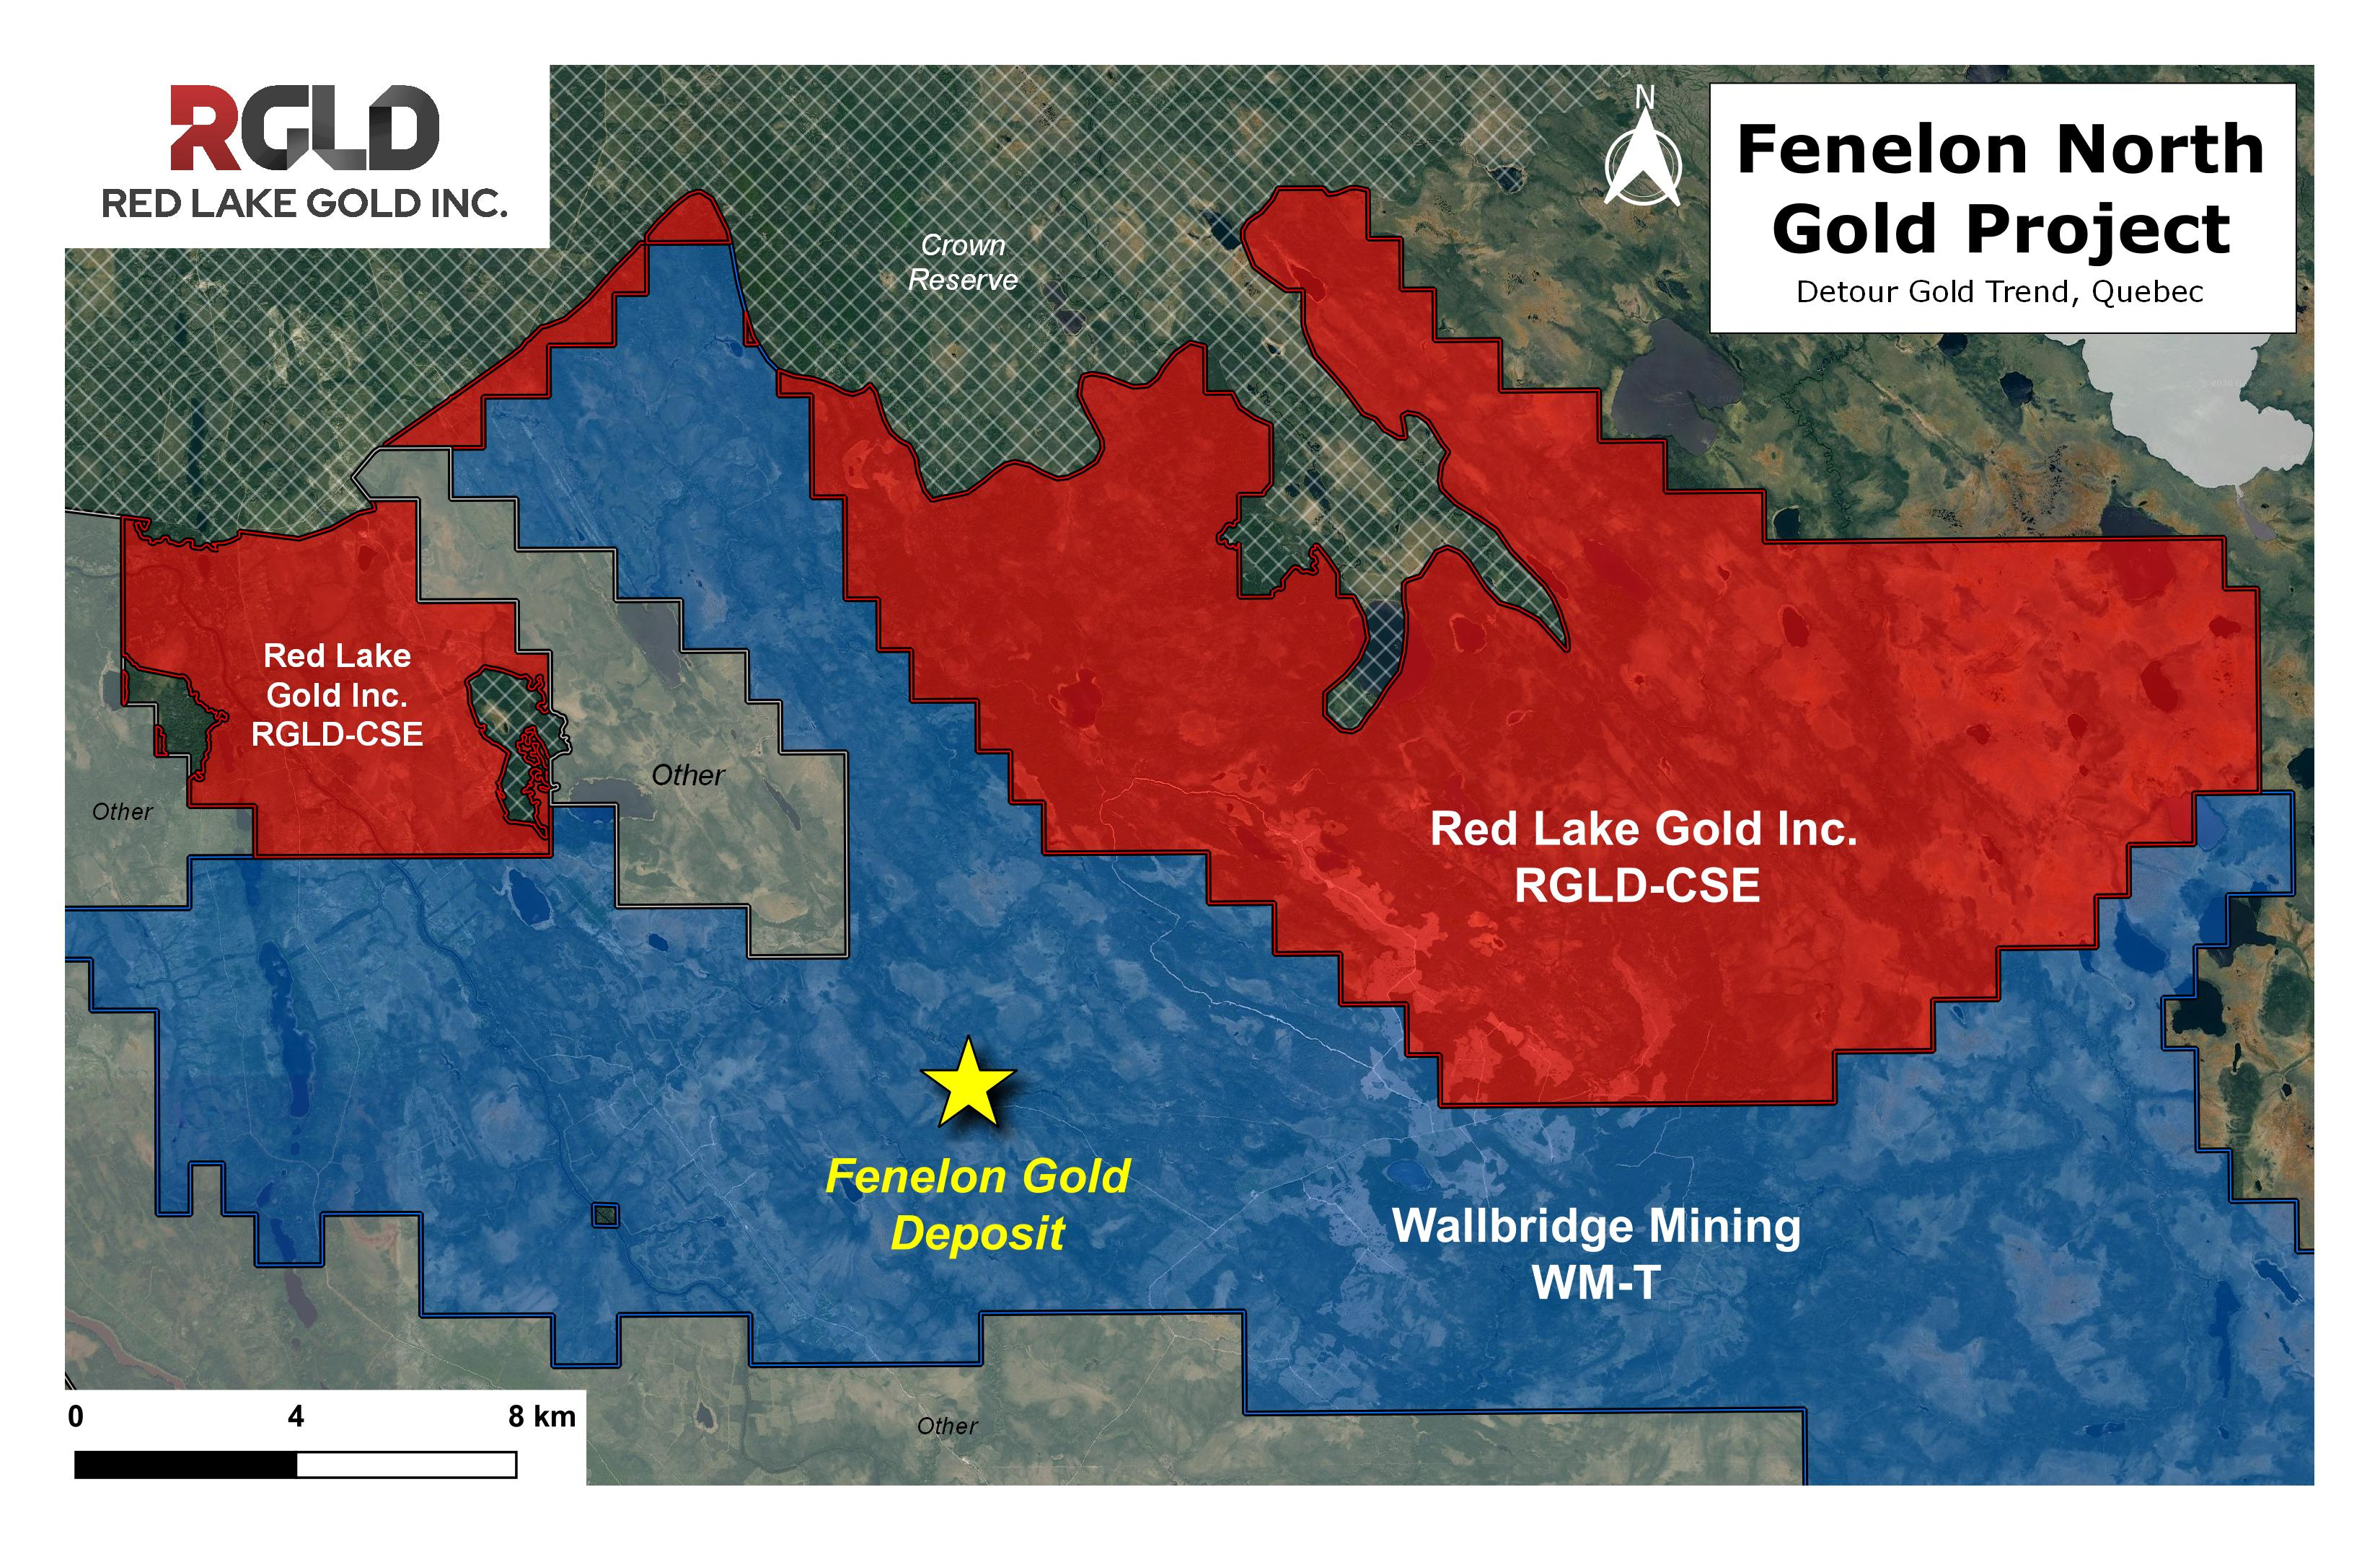 Figure 1: Map of the Expanded Fenelon North Gold Project